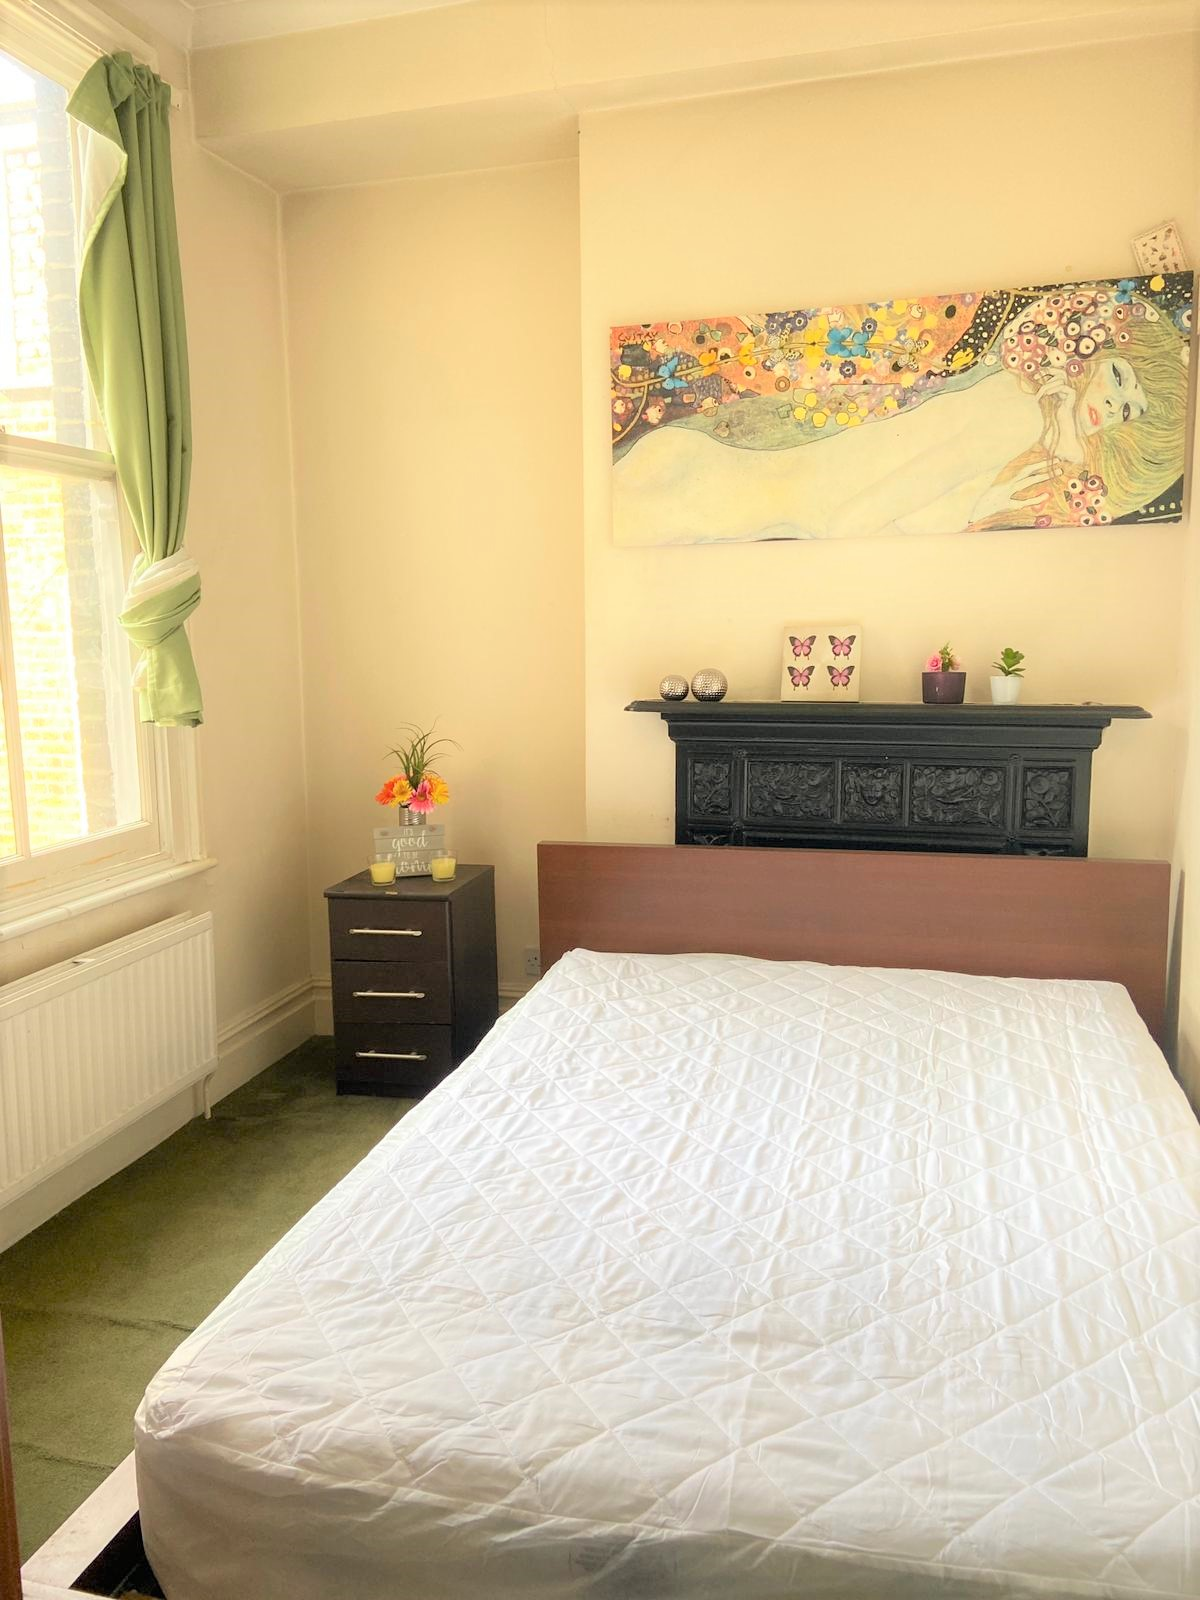 1 bed flat share to rent in Pennard Road, Shephards Bush, London  - Property Image 2